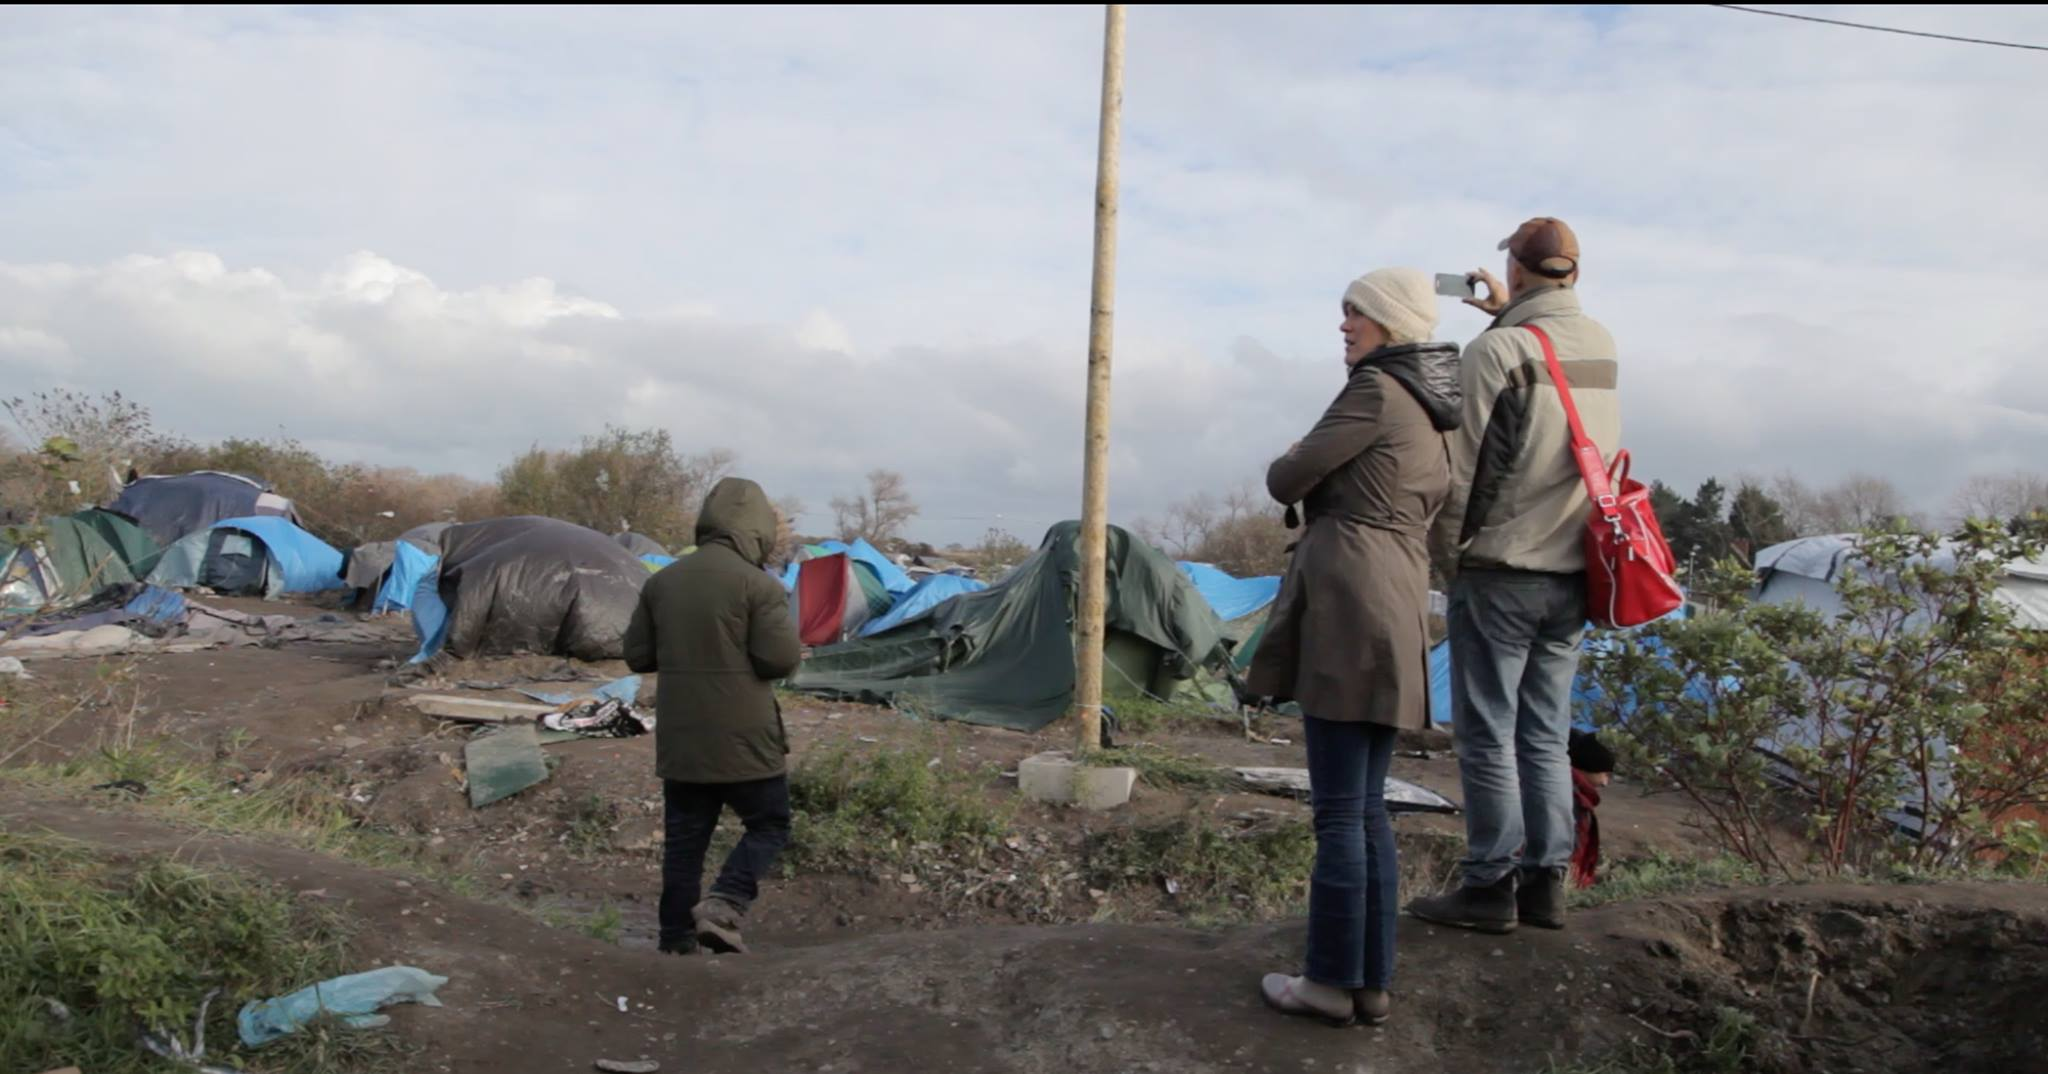 What do you stand for? #istand - REFUGEES camp in Calais FRANCE - Leon Aarts